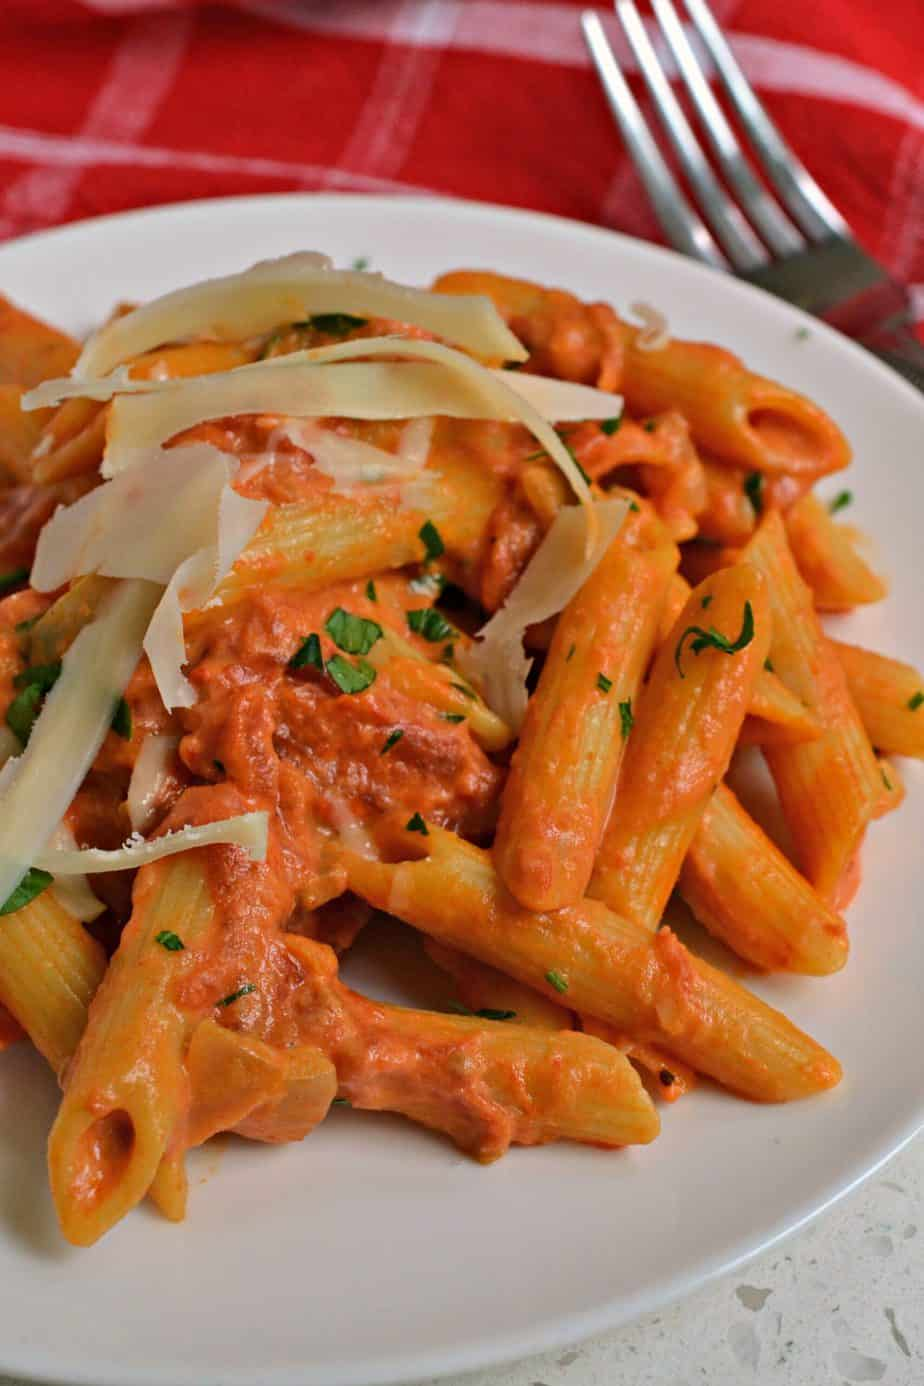 Penne alla Vodka is one of our favorite pasta dishes and you will be pleasantly surprised how well it all comes together.